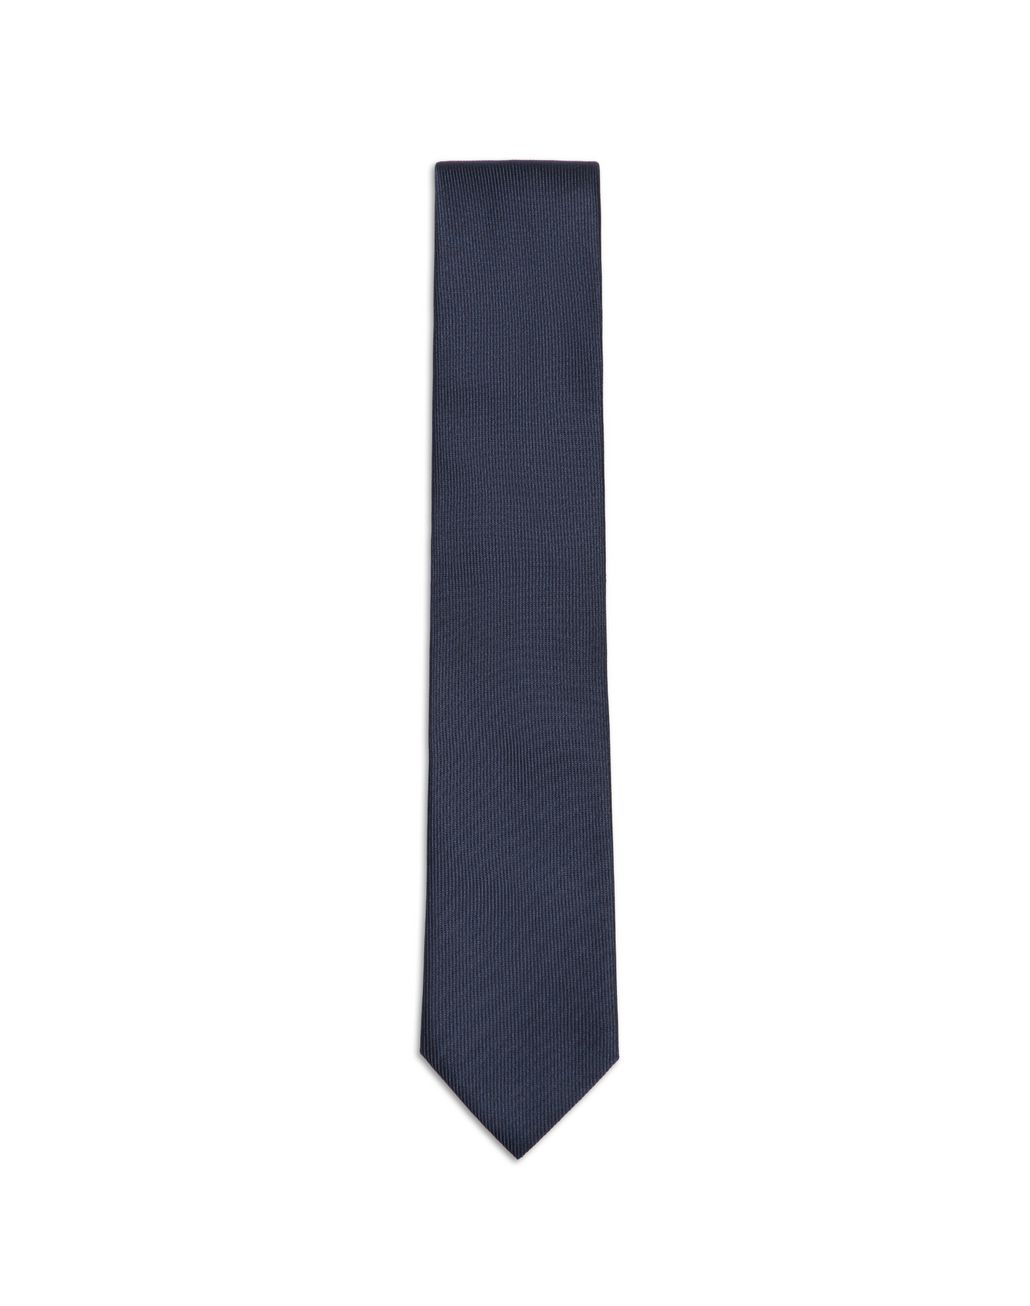 BRIONI Navy Blue Pinstriped Tie Tie & Pocket Square Man f